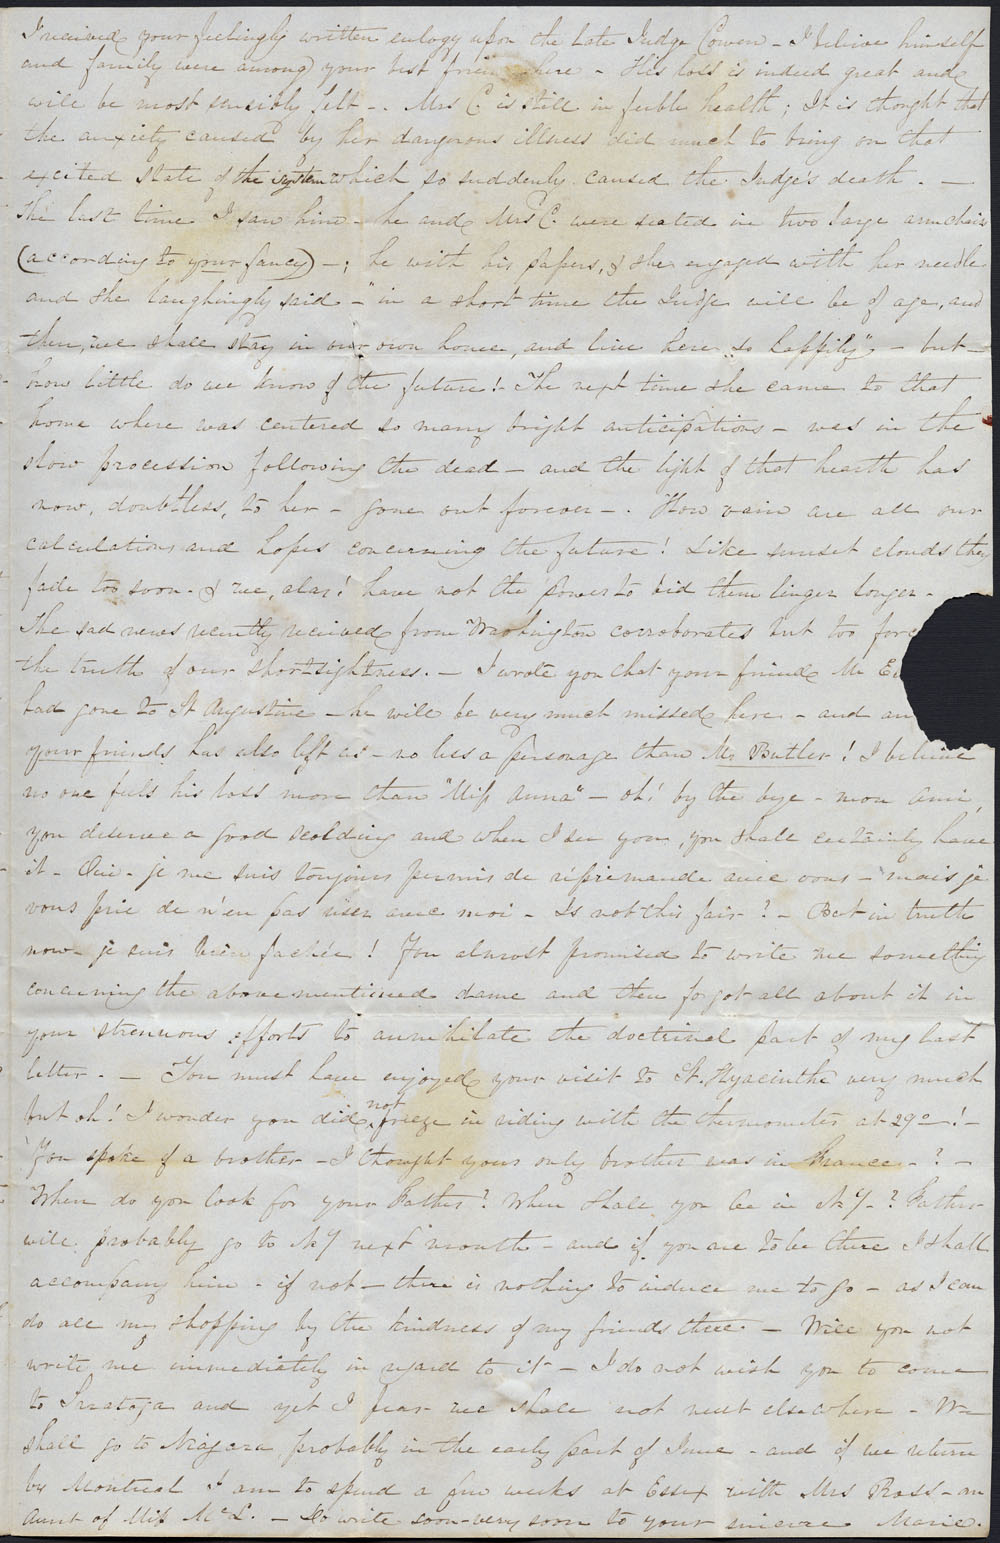 [Correspondence of Mary Westcott] 1844. (item 3)